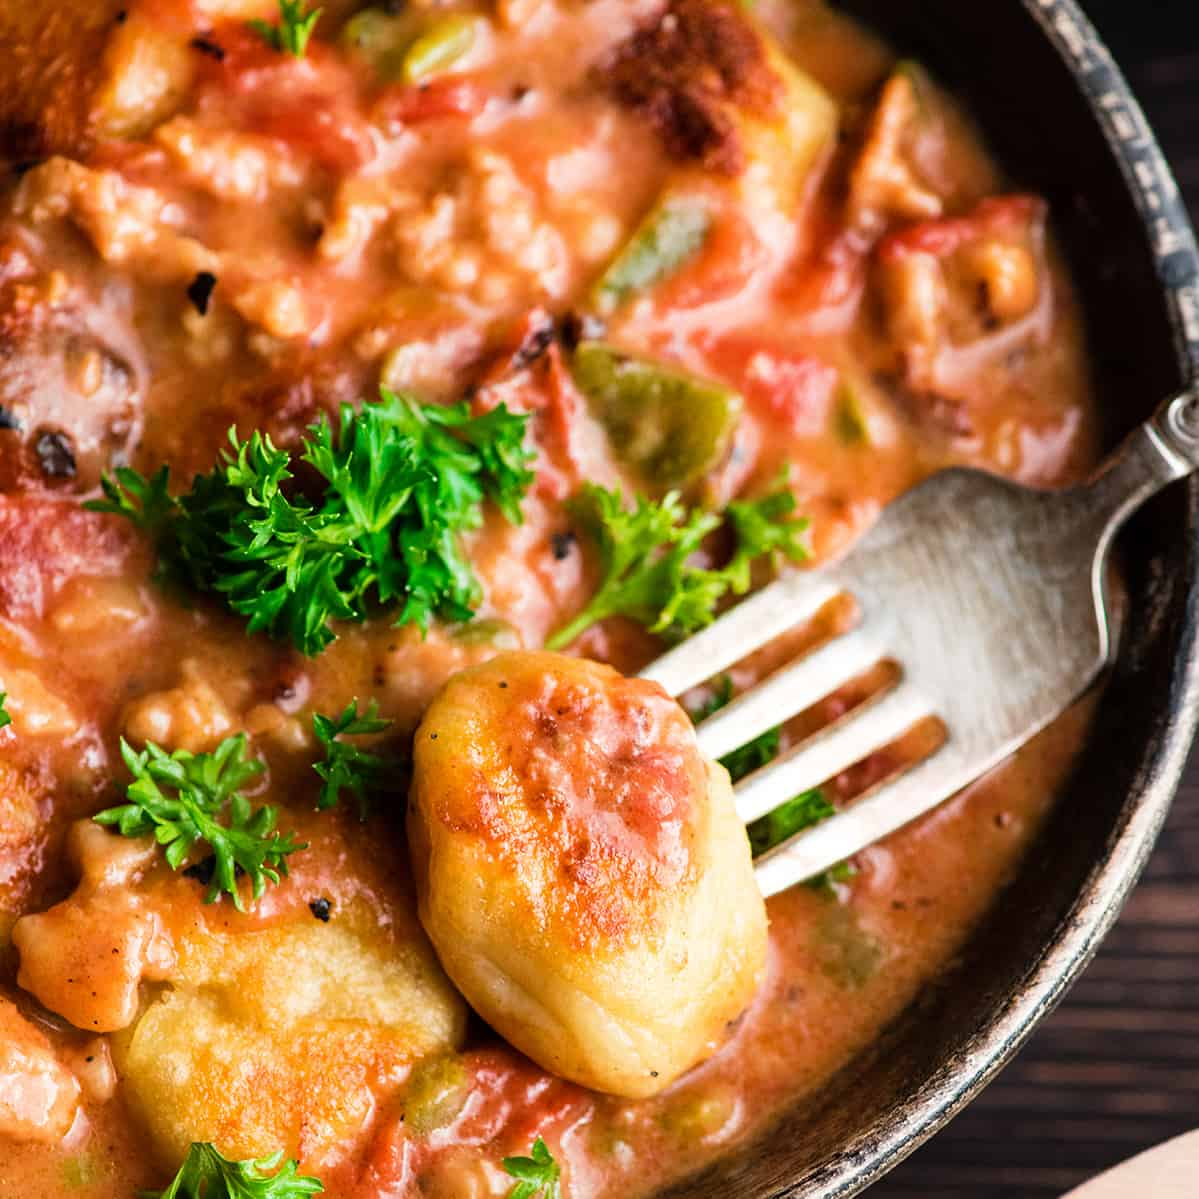 overhead view of a piece of potato gnocchi in sauce